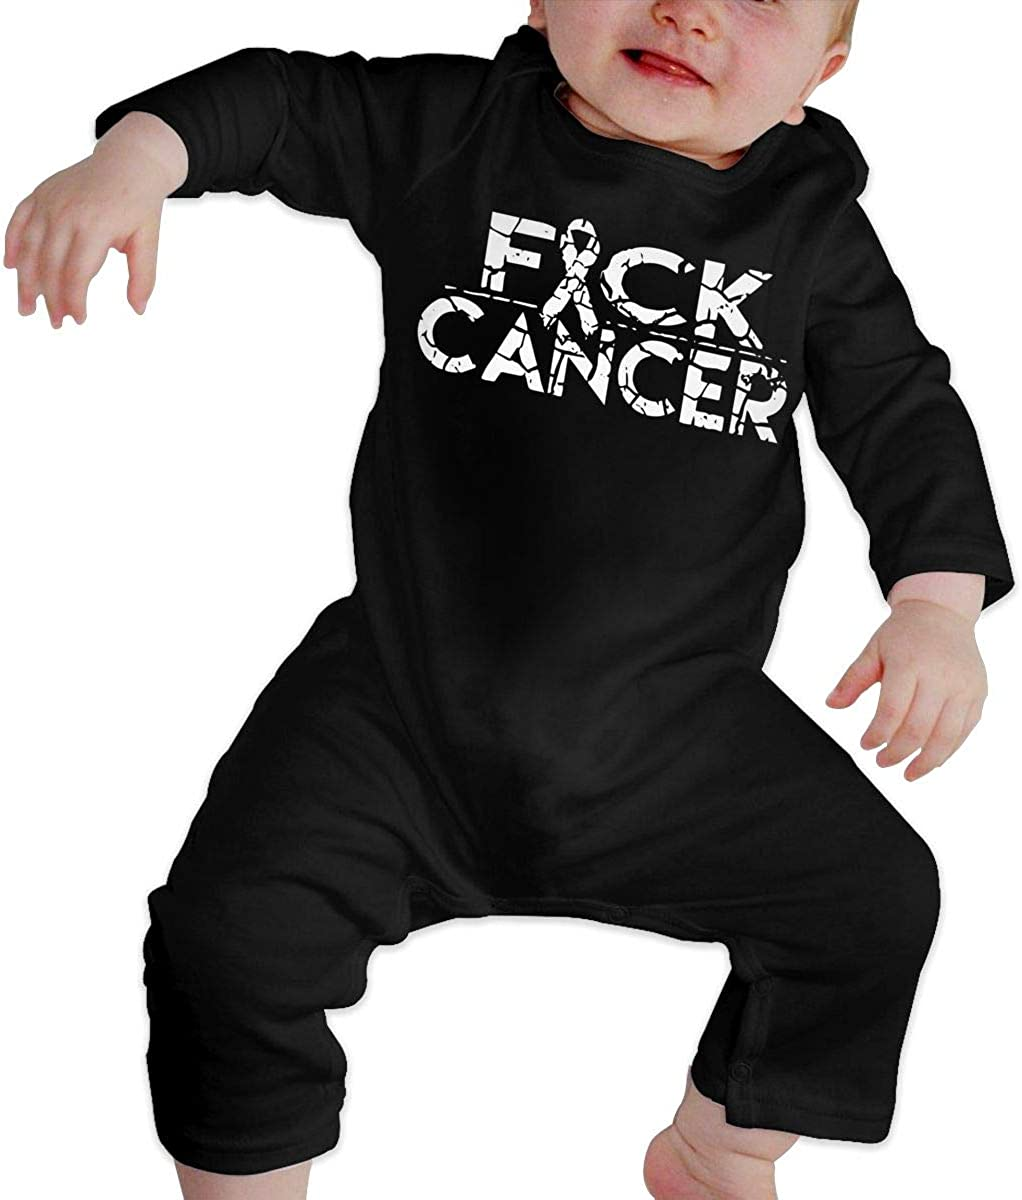 YELTY6F Fuck Cancer Printed Newborn Infant Baby Boy Girl Bodysuit Long Sleeve Outfits Black